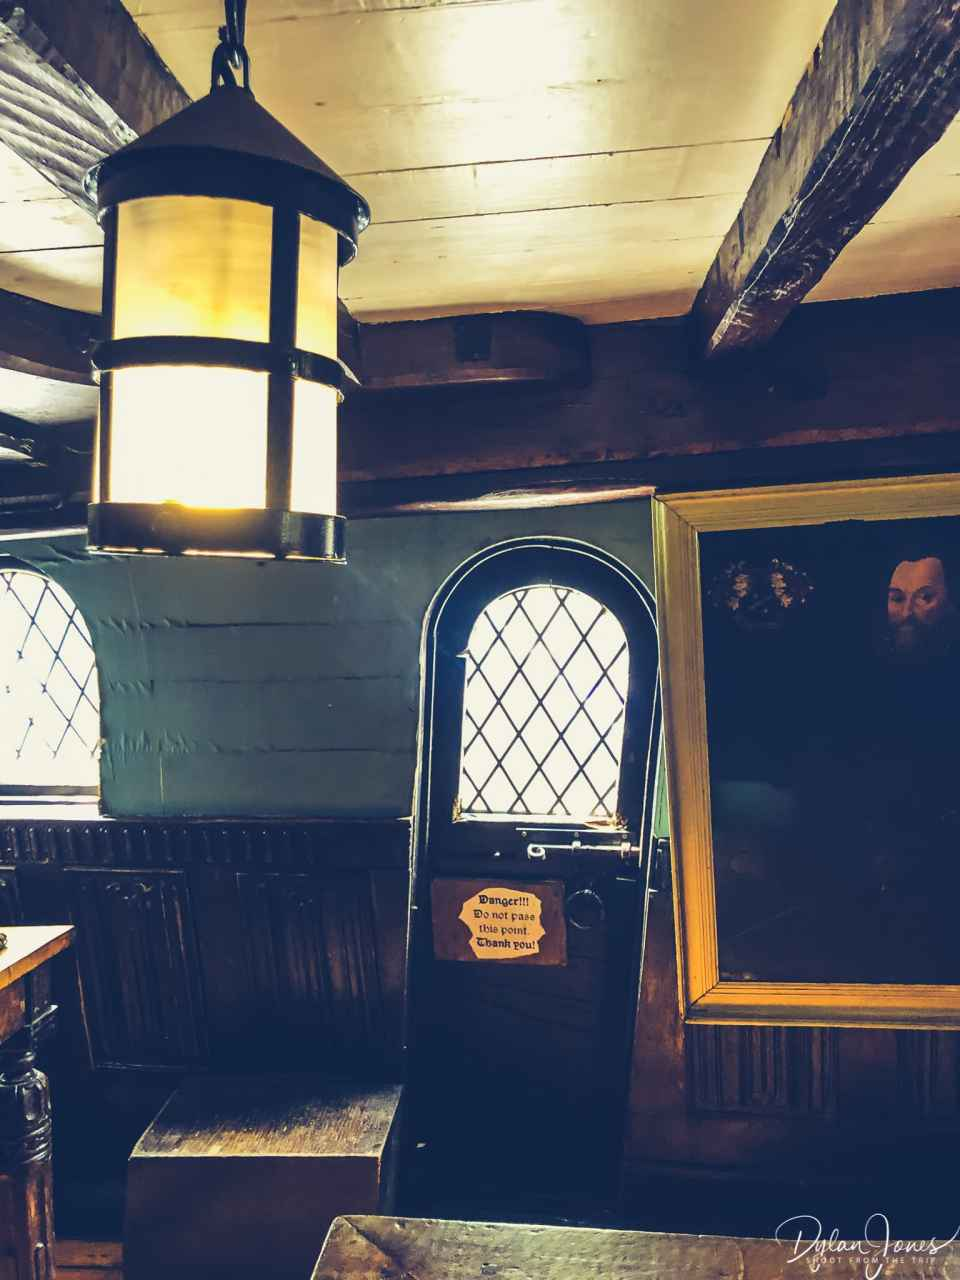 Interior shot of The Golden Hinde